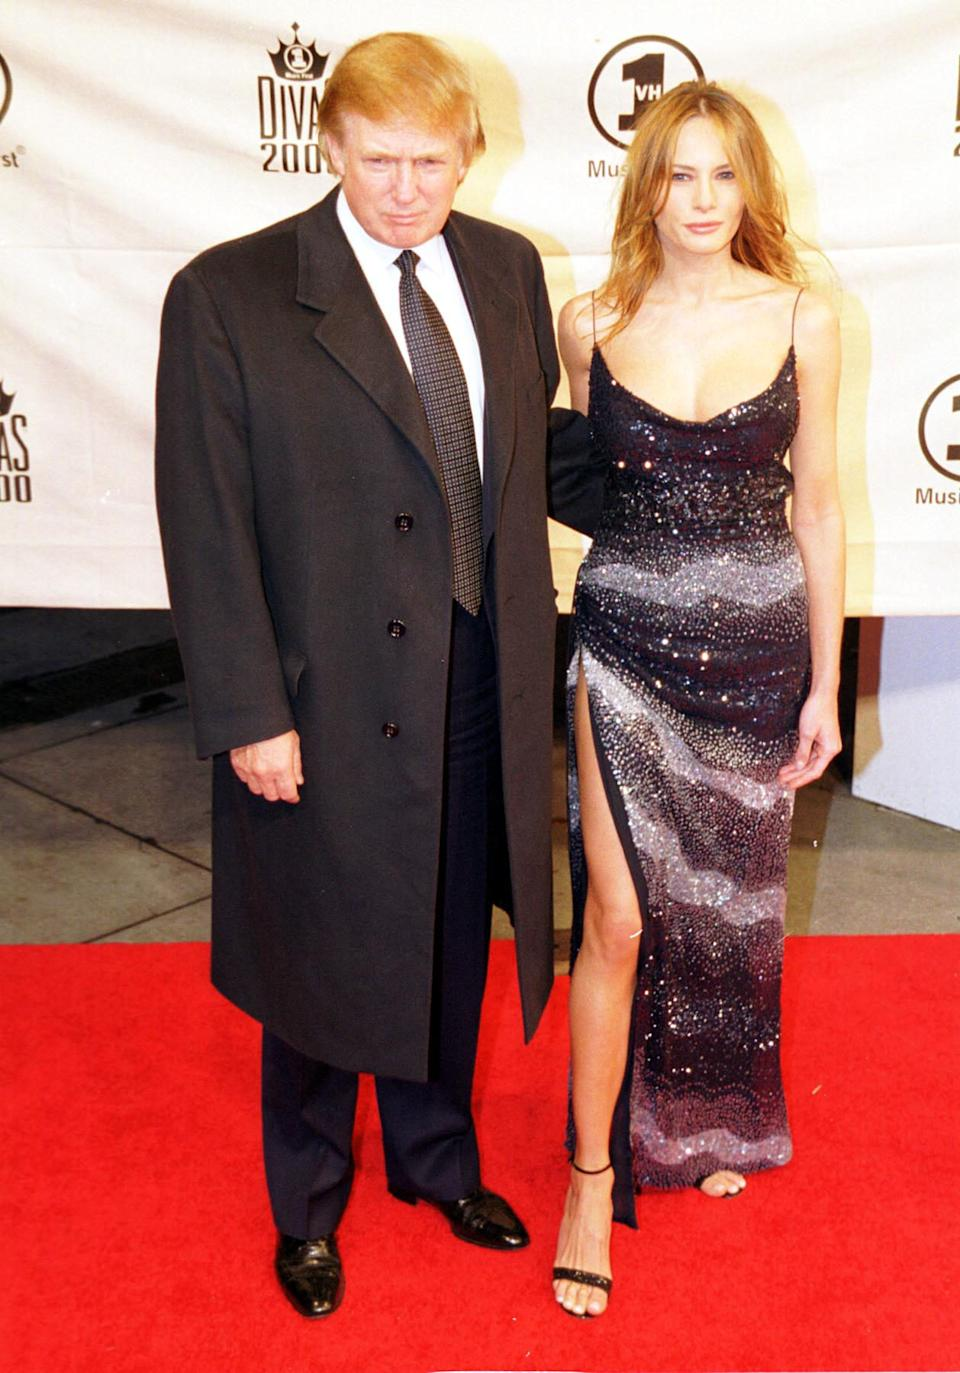 American business tycoon Donald Trump with his girlfriend Melania Knauss at the VH1 Diva's 2000, the 3rd annual VH1 Diva's show which this year was a tribute to Diana Ross, held in Madison Sqaure Gardens in New York.